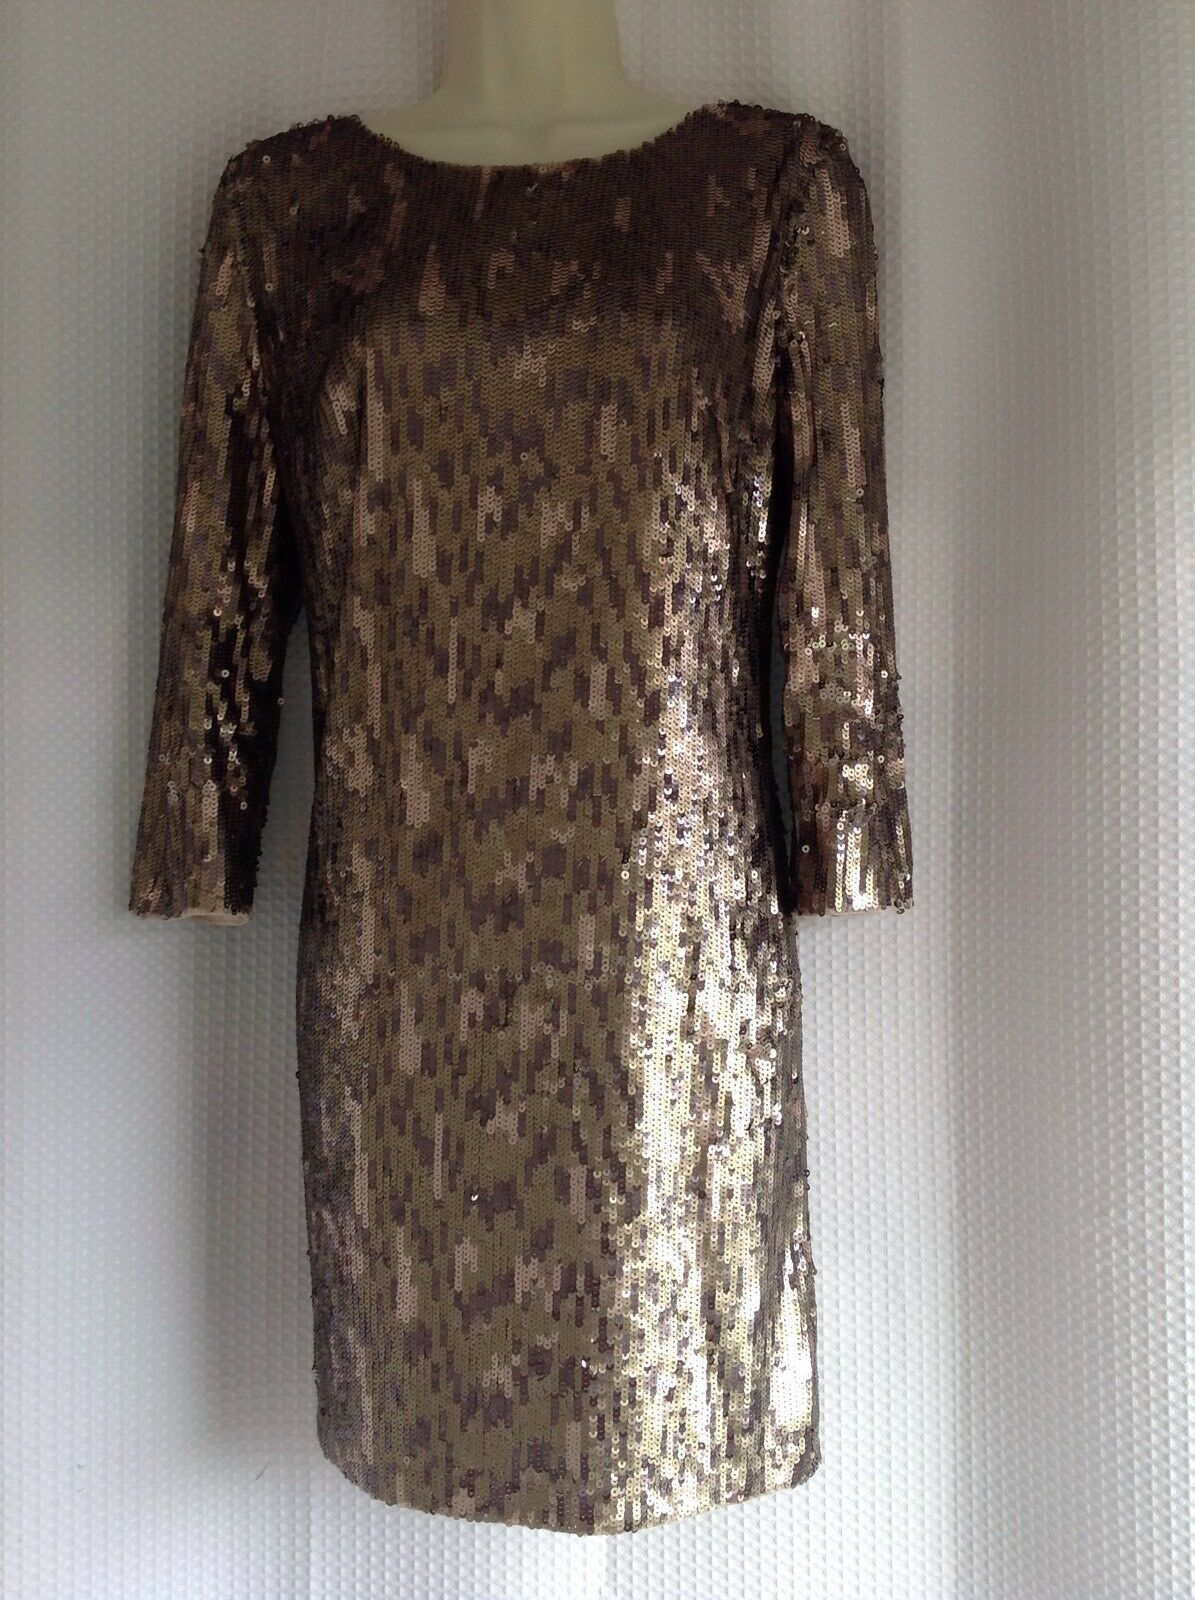 FRENCH CONNECTION STUNNING STUNNING STUNNING SEQUINNED DRESS SIZE 12 5a429e